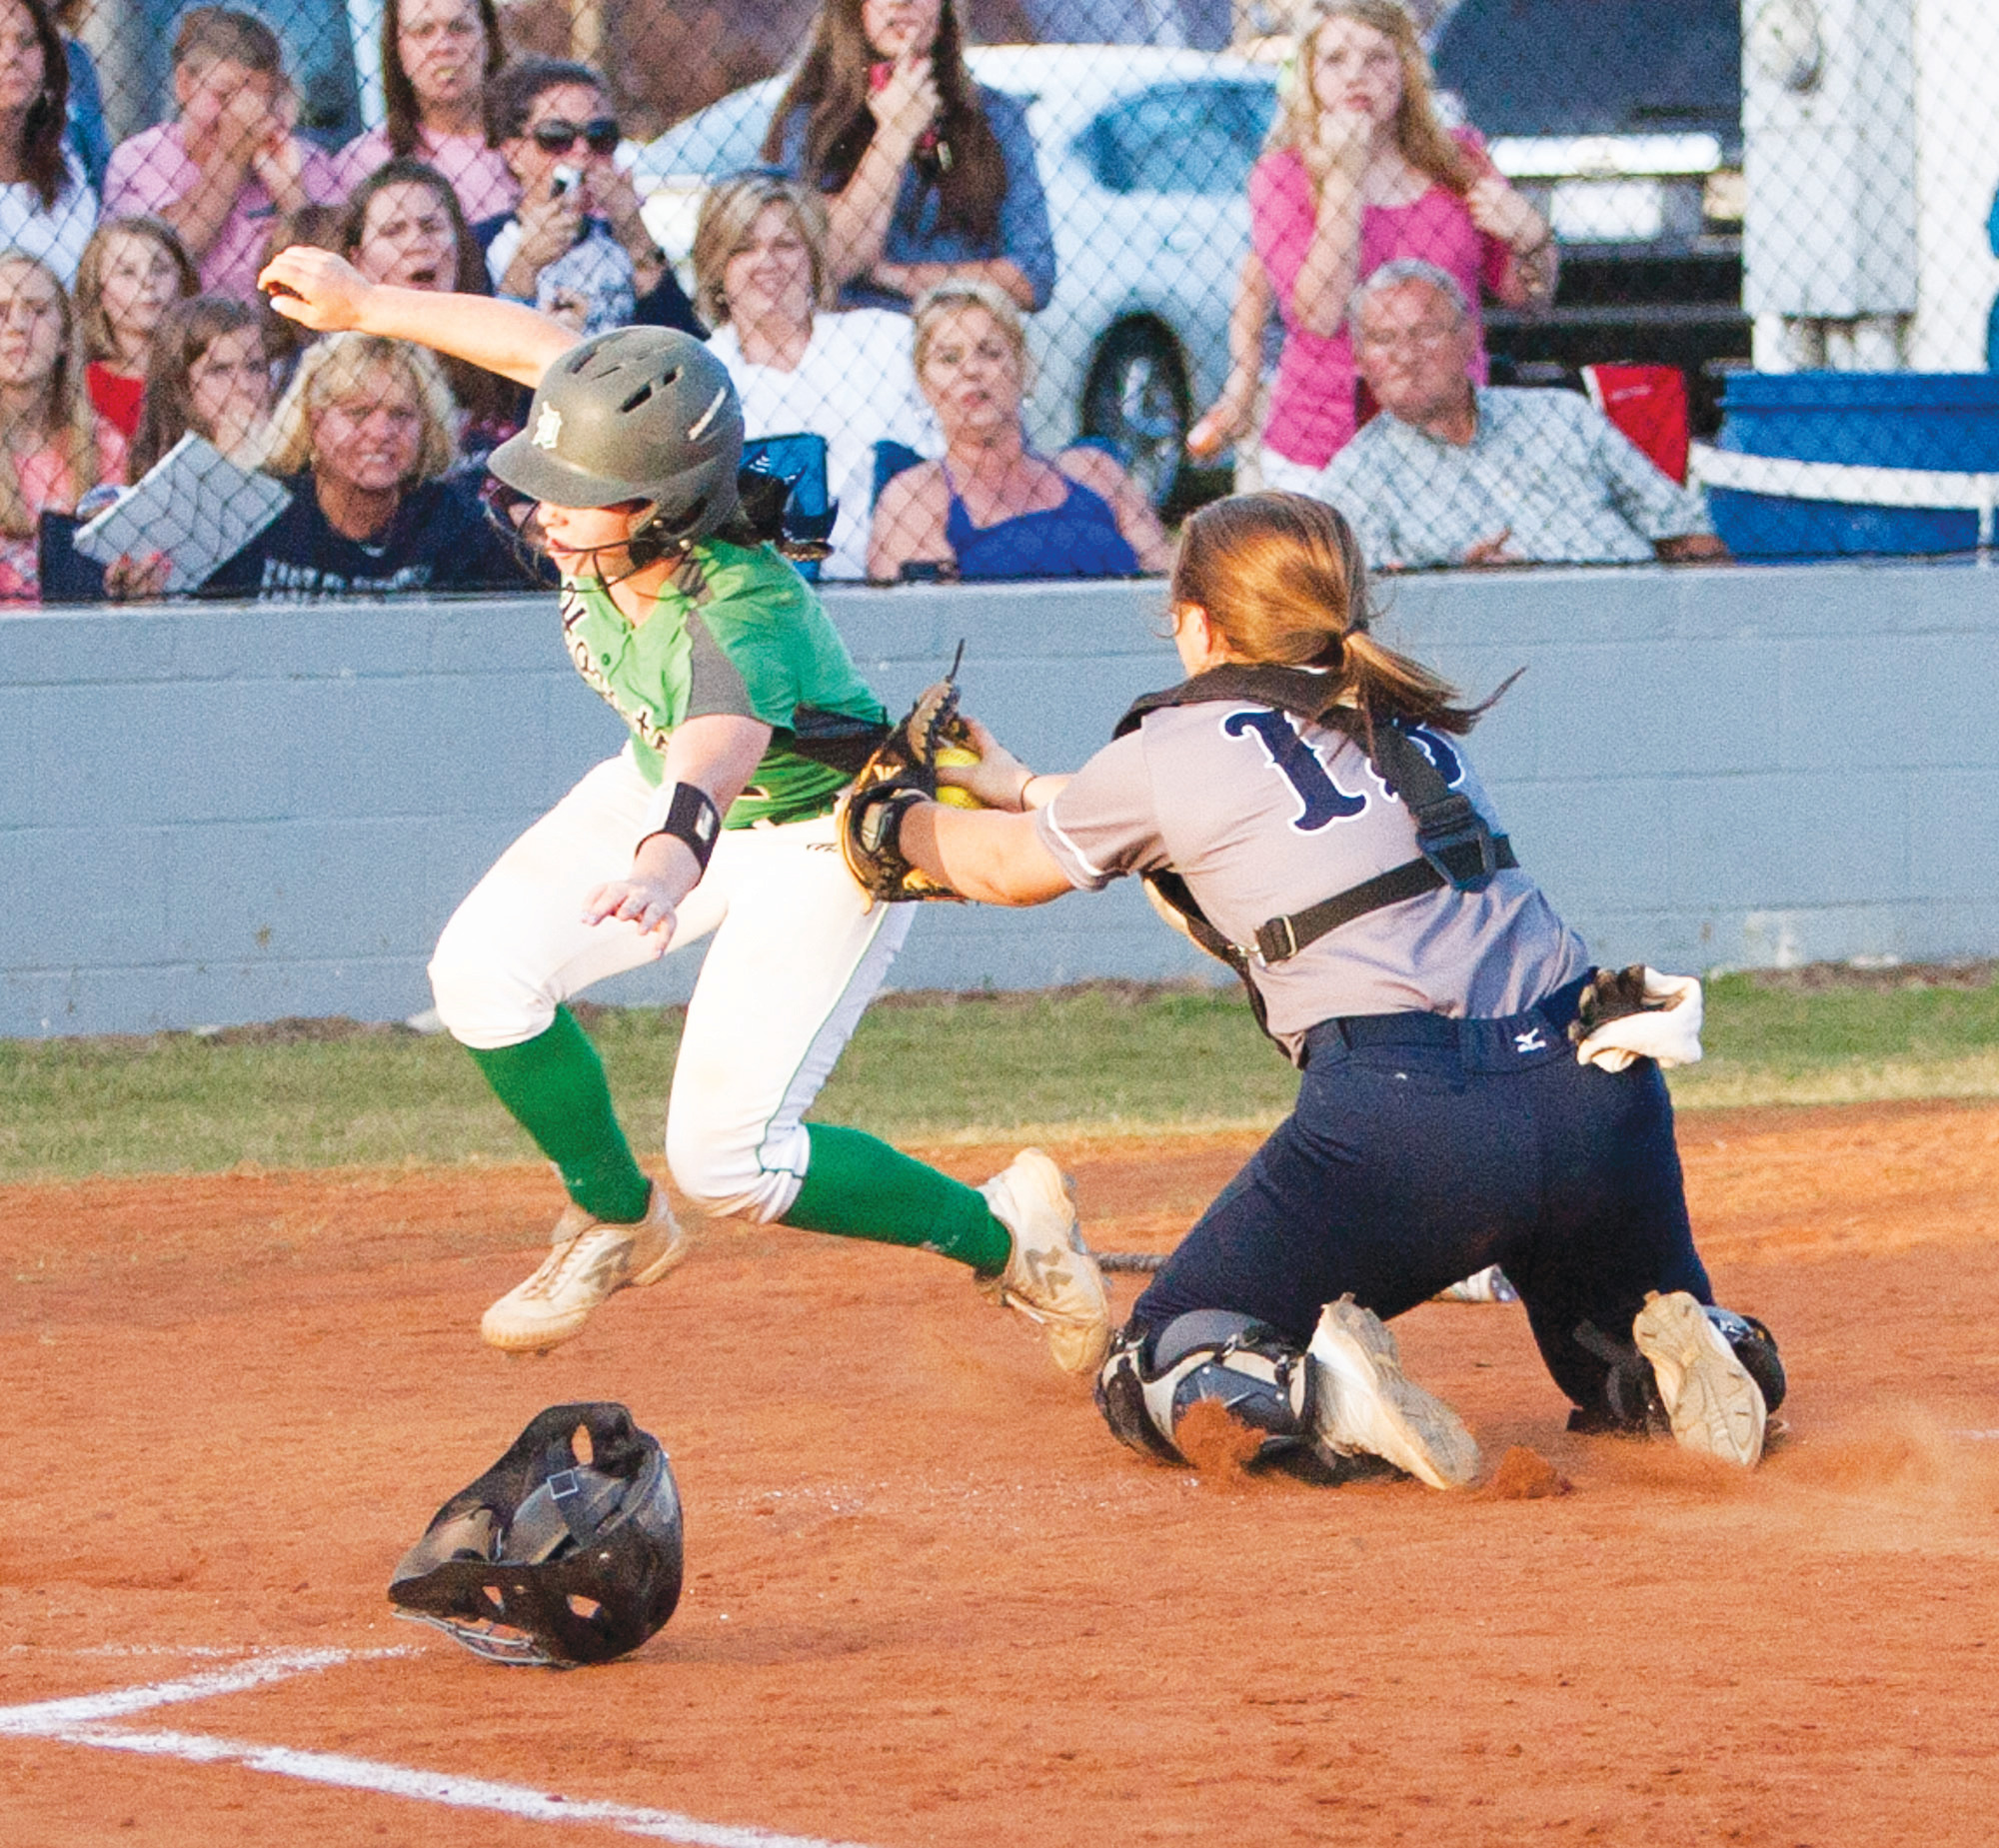 Dixie's Lauren Davenport (7) runs around the attempted tag of East Clarendon catcher Abby Reardon in the Lady Wolverines' 4-3 victory on Wednesday in Turbeville. The victory gave the Lady Wolverines the 1A state title.